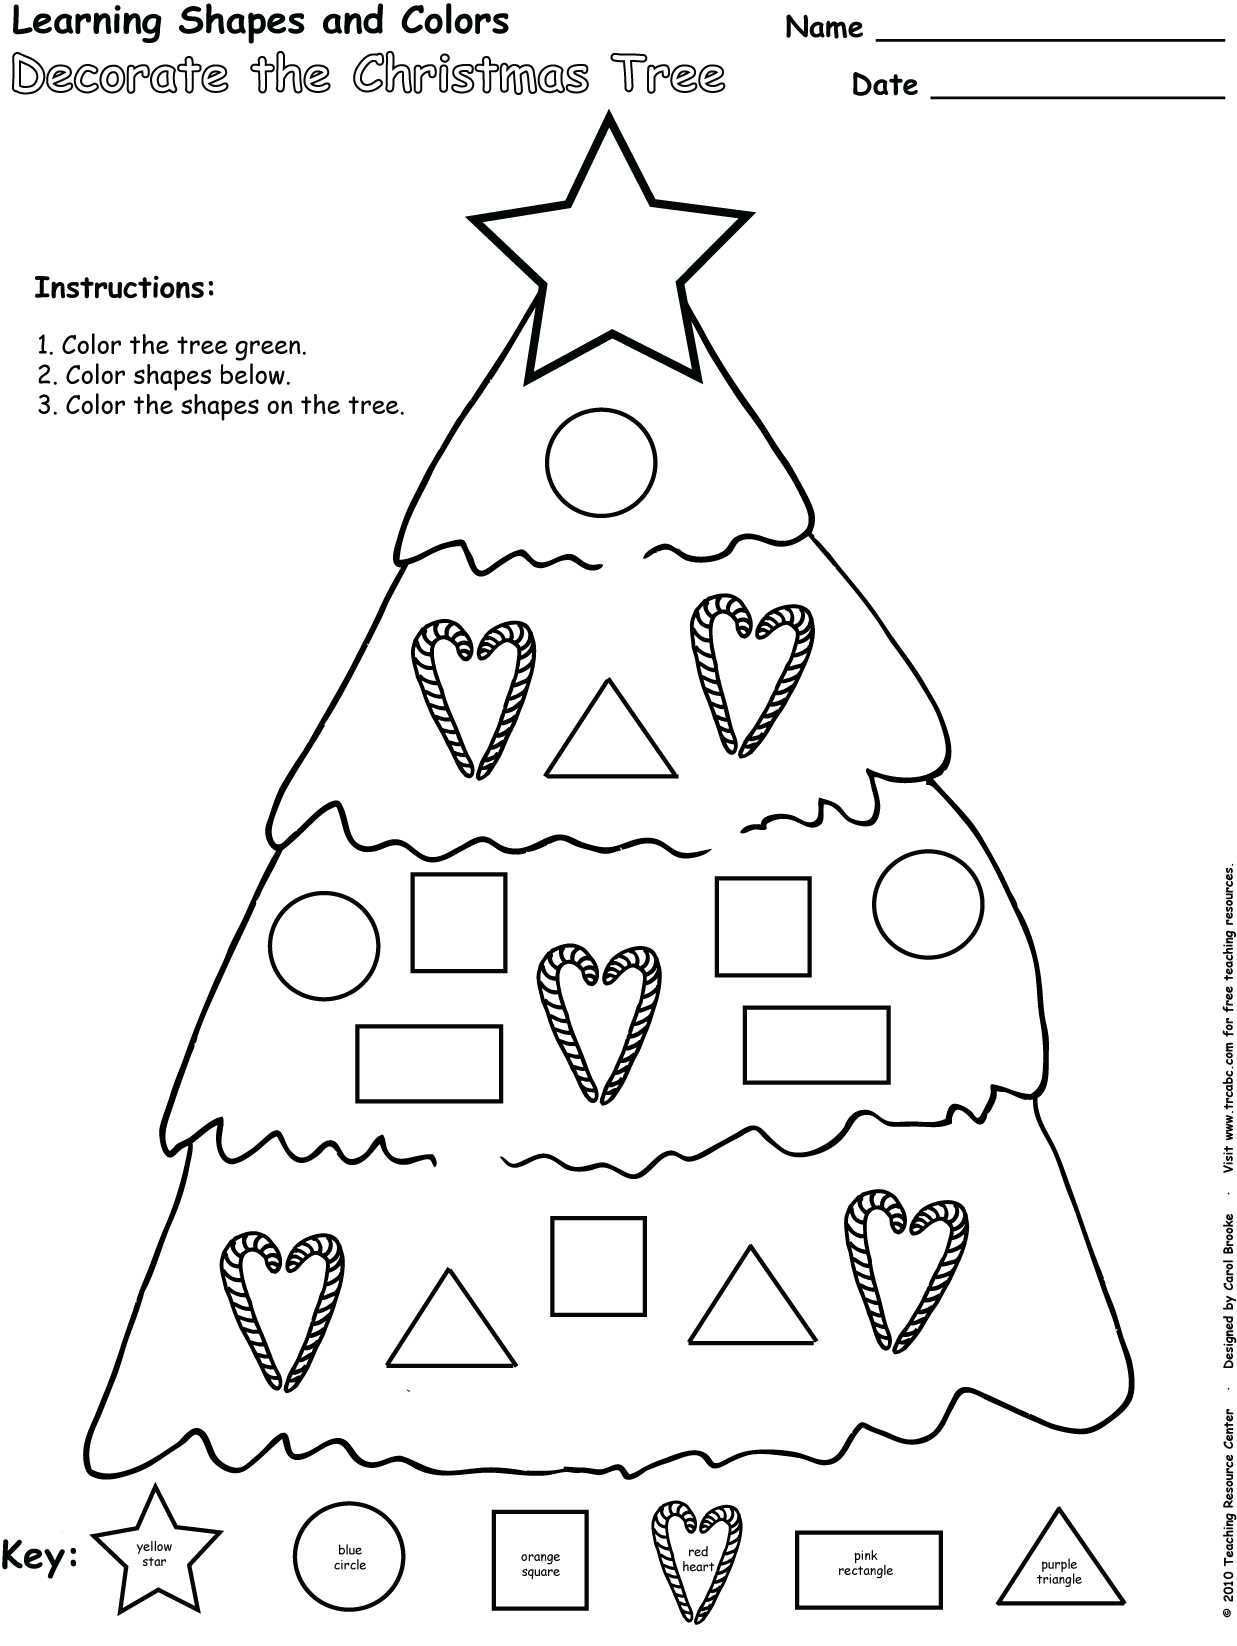 Colors Worksheets For Preschoolers Free Printables Along With Ciao Bambini 3 6 Anni Christmas School Christmas Classroom Christmas Kindergarten [ 1646 x 1237 Pixel ]